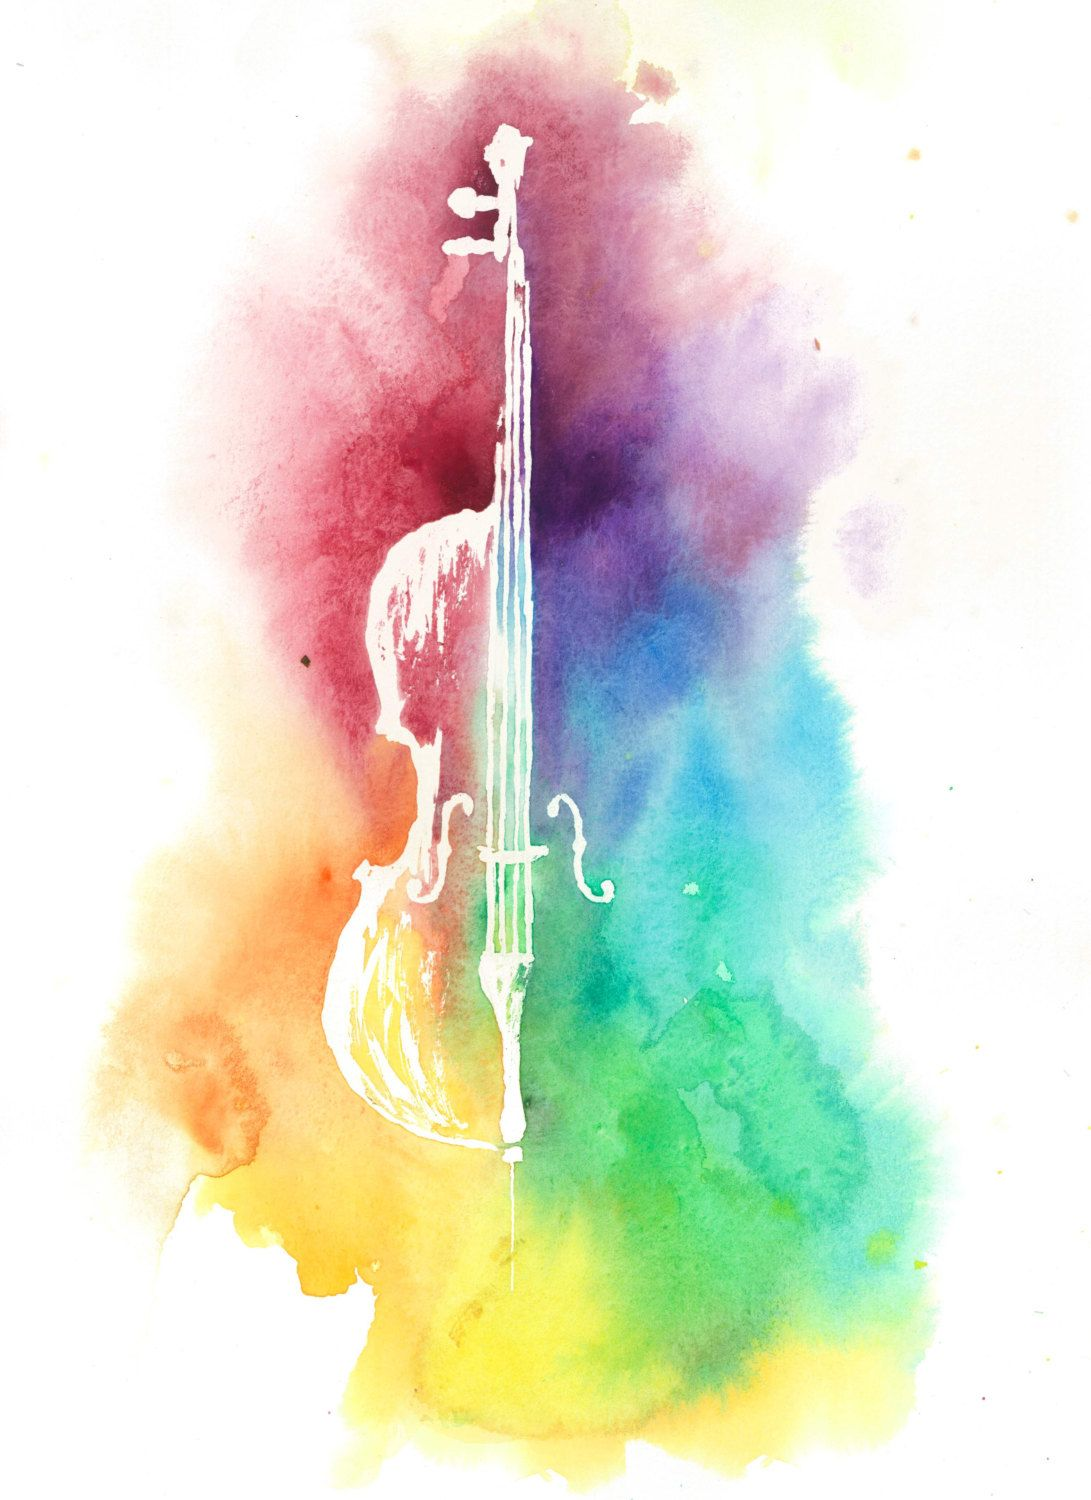 Watercolor Colorful CelloRainbow Painting Instrument Print - Putting paint on a drum kit creates an explosive rainbow